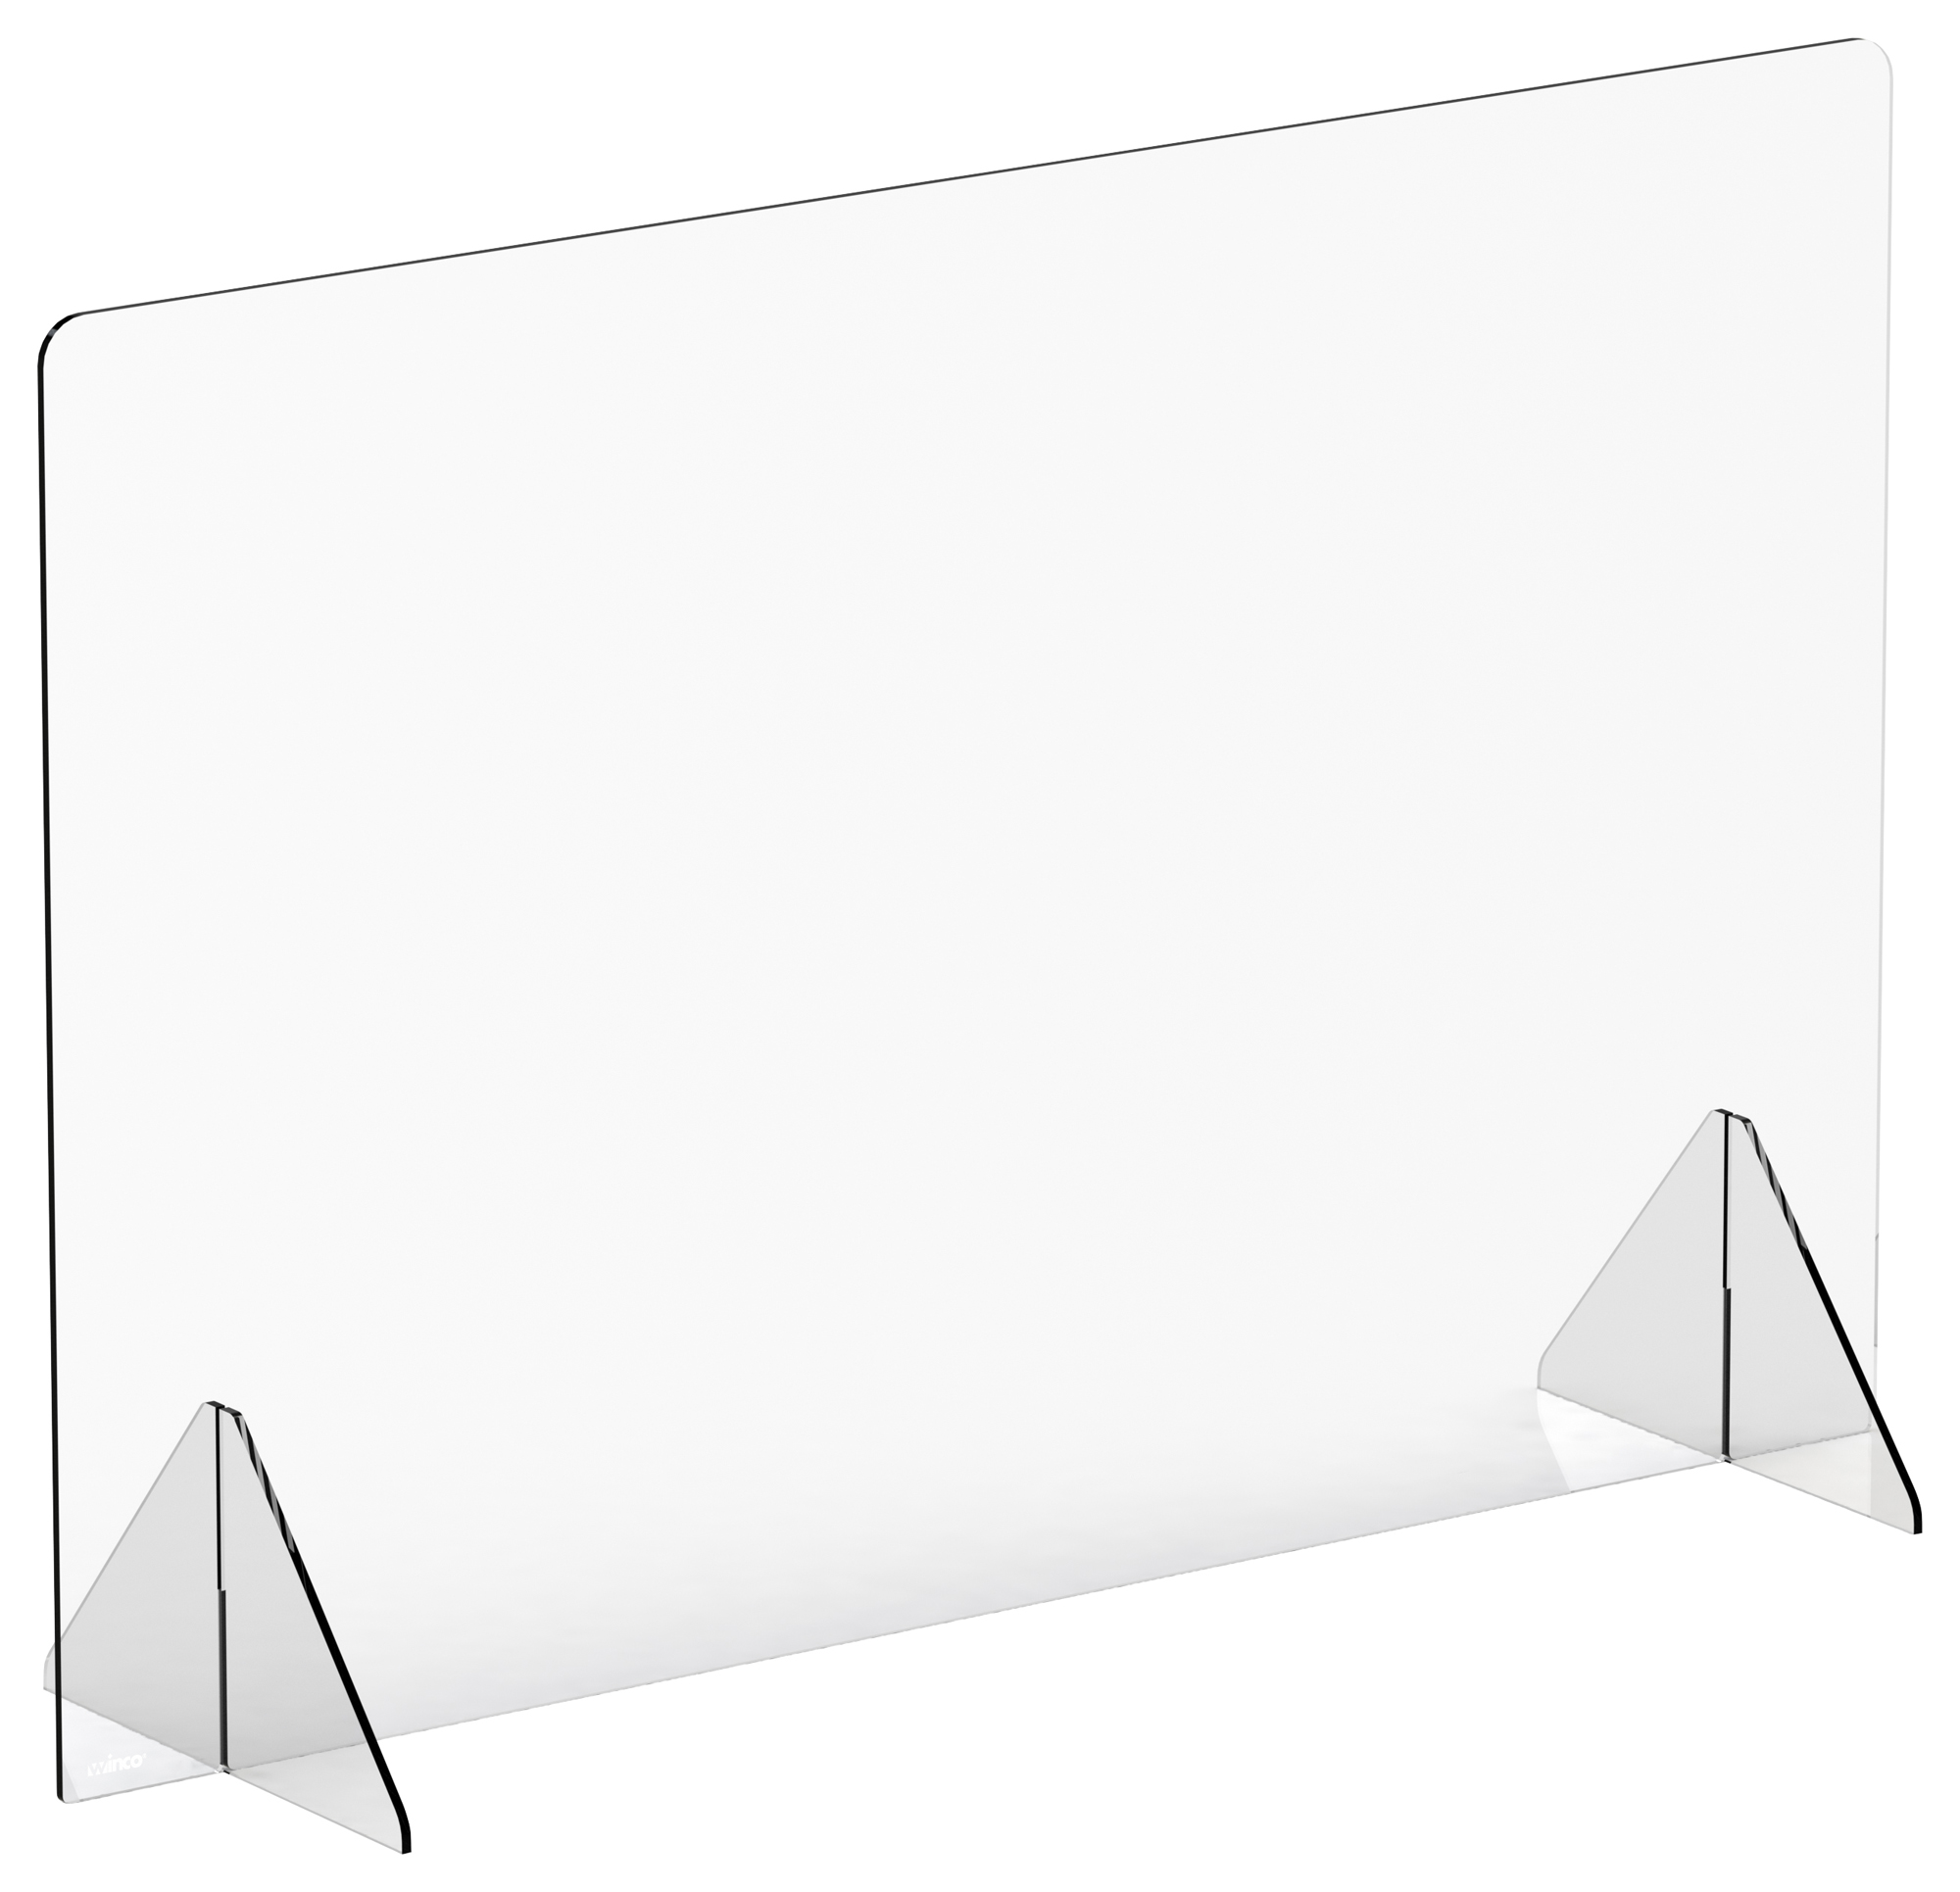 Winco ACSS-4832 clear safety shield